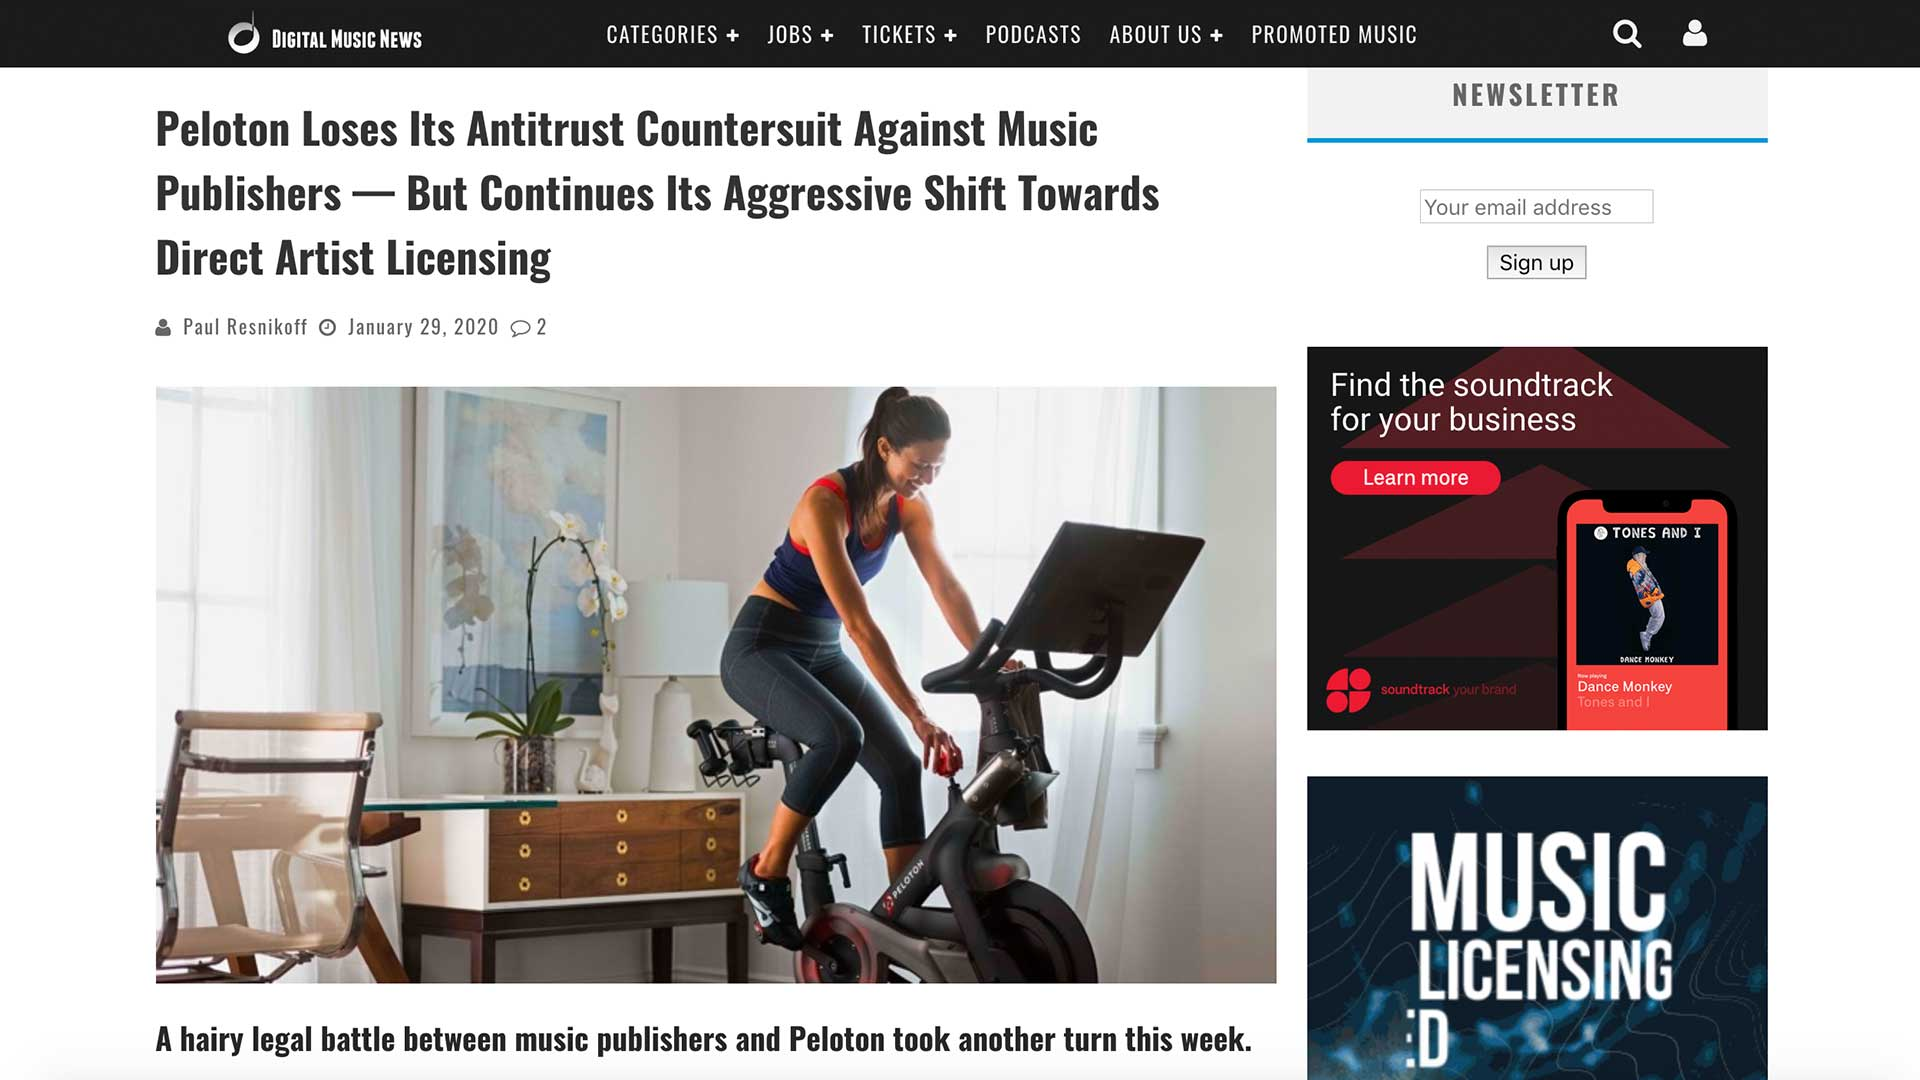 Fairness Rocks News Peloton Loses Its Antitrust Countersuit Against Music Publishers — But Continues Its Aggressive Shift Towards Direct Artist Licensing